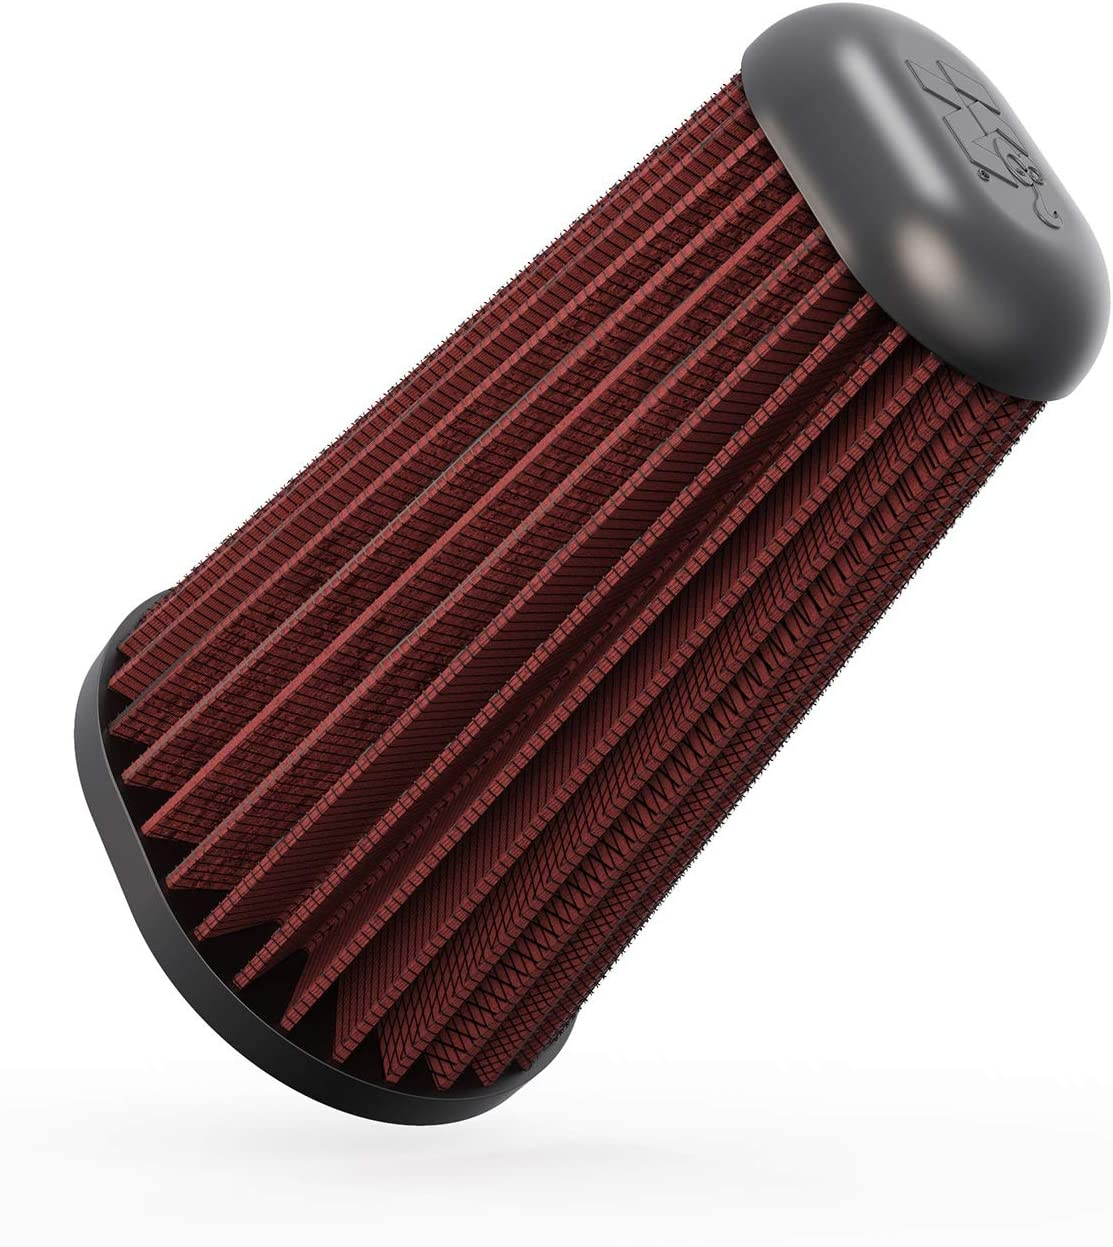 K&N Engine Air Filter: High Performance, Premium, Washable, Replacement Filter: Fits 2013-2016 Porsche (Boxster, Cayman) E-0666